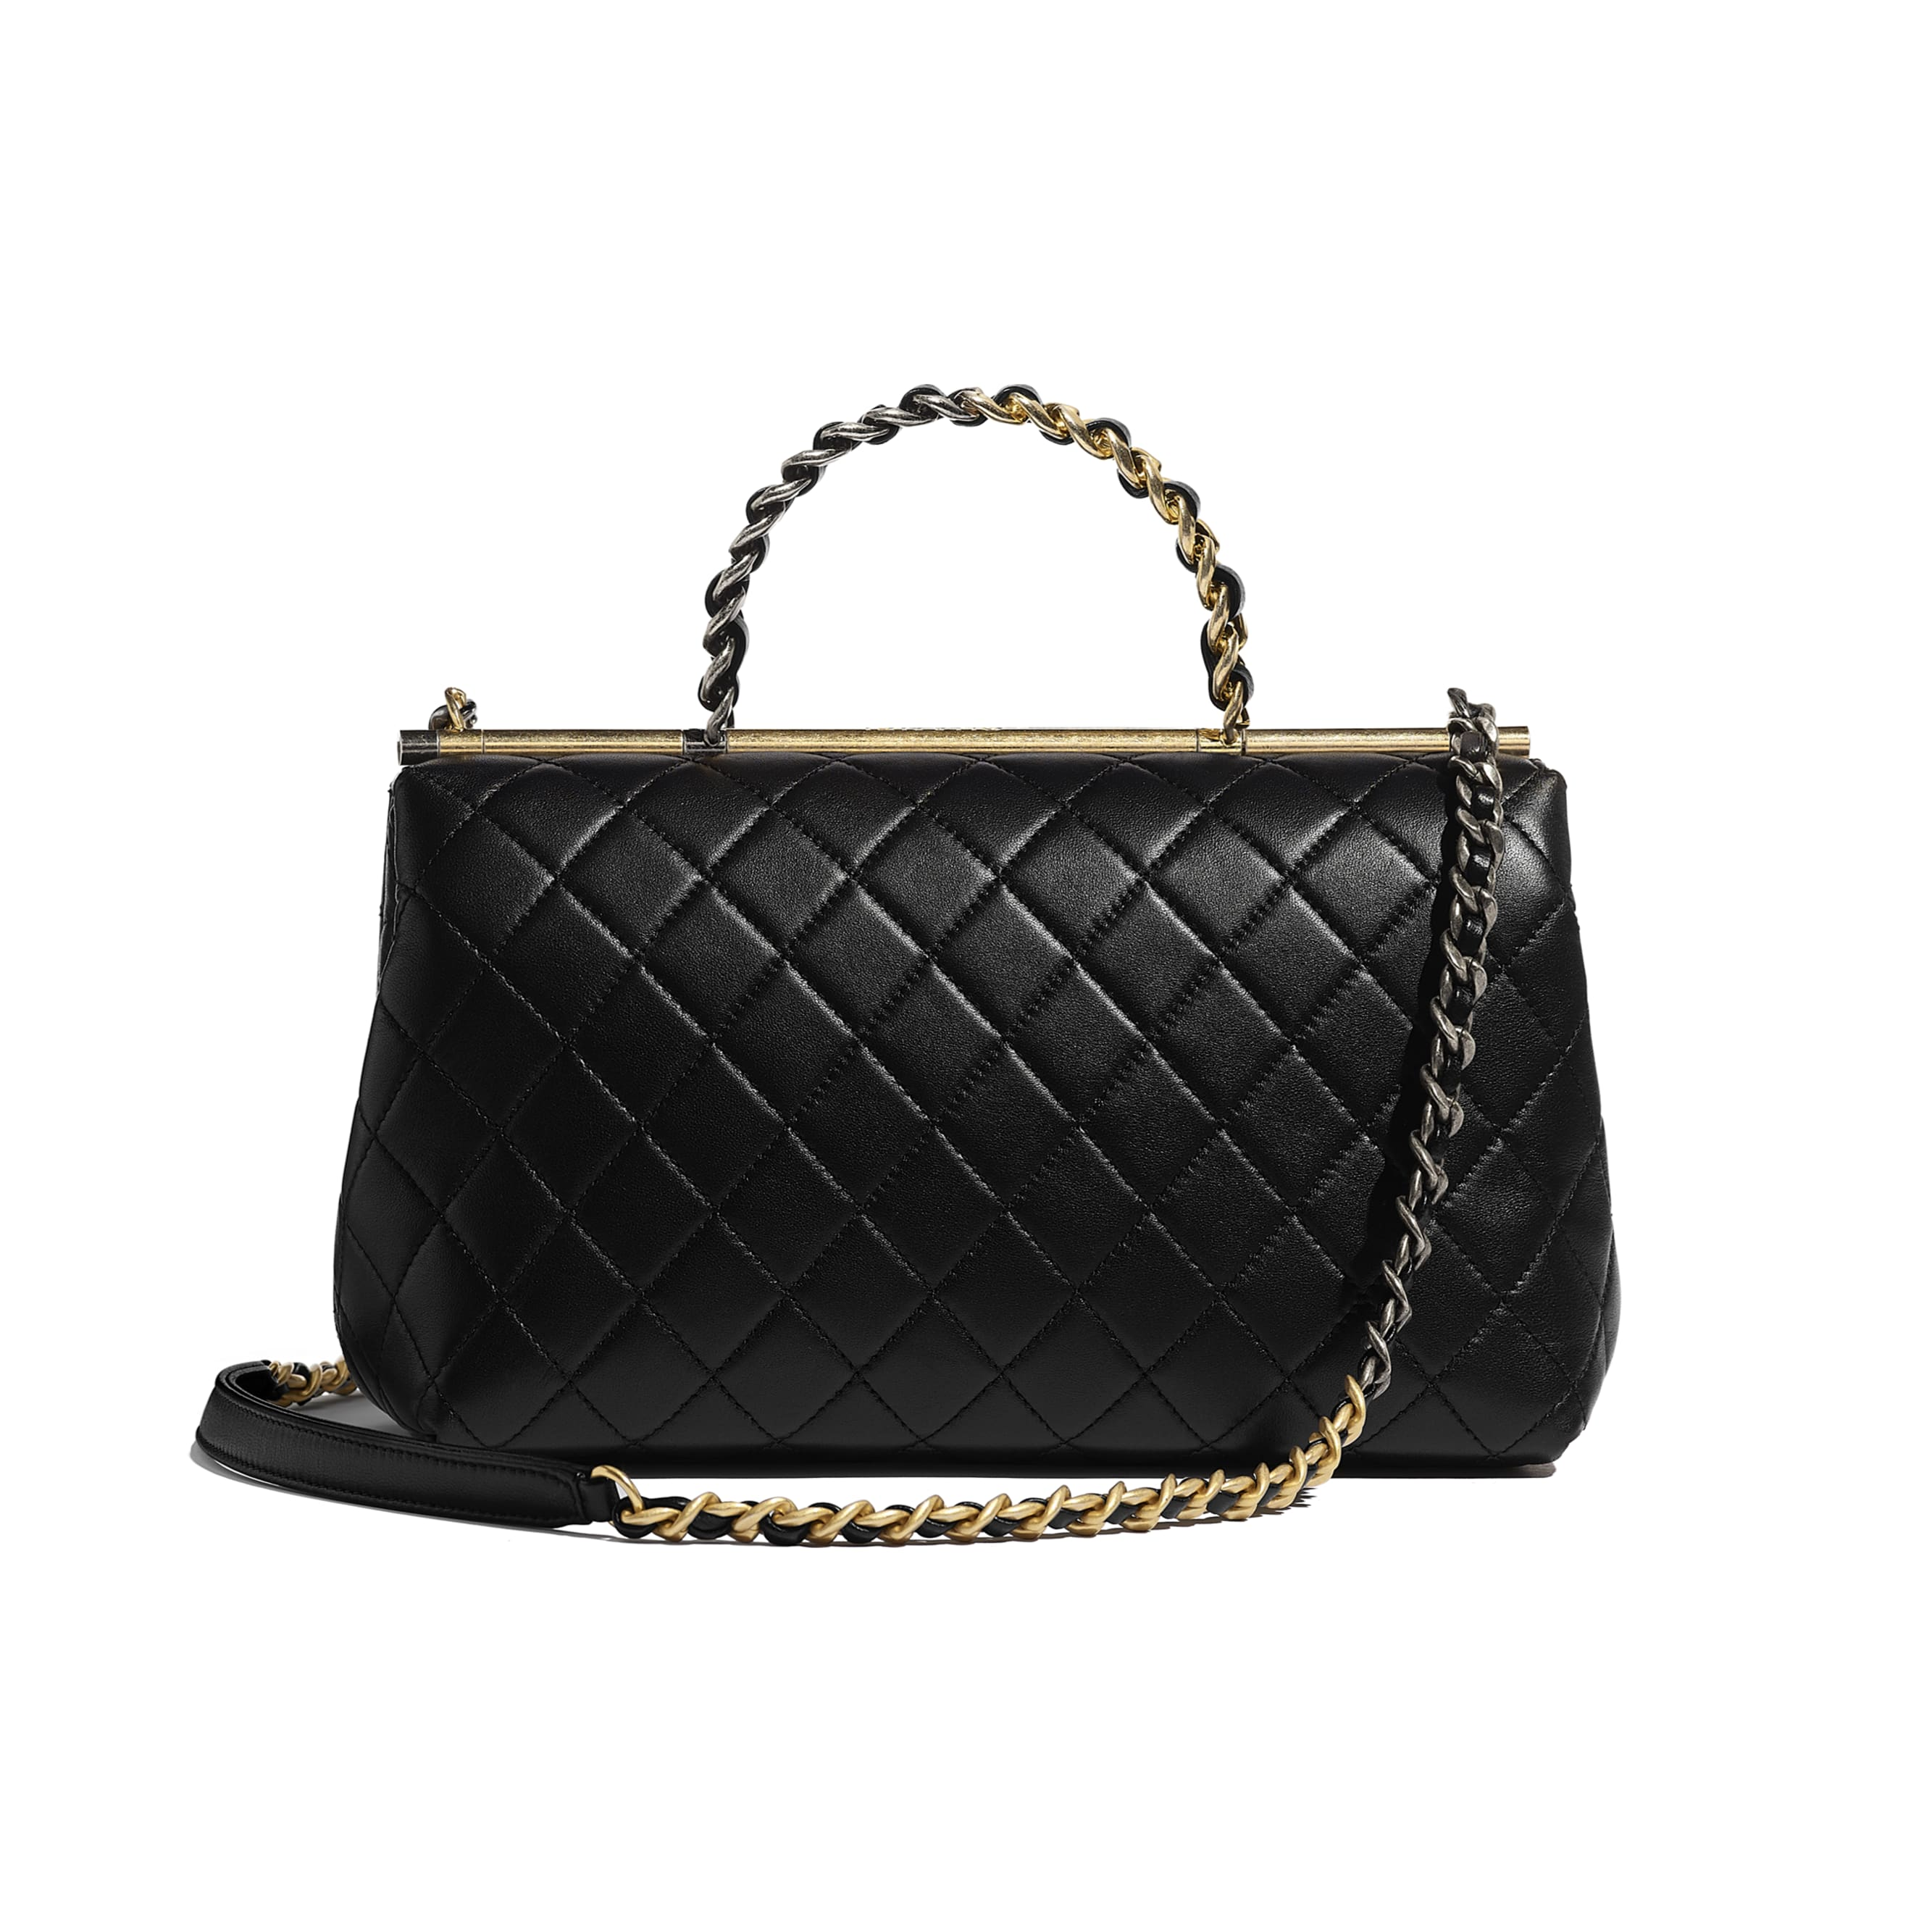 Large Flap Bag With Top Handle - Black - Lambskin, Gold-Tone & Ruthenium-Finish Metal - Alternative view - see standard sized version